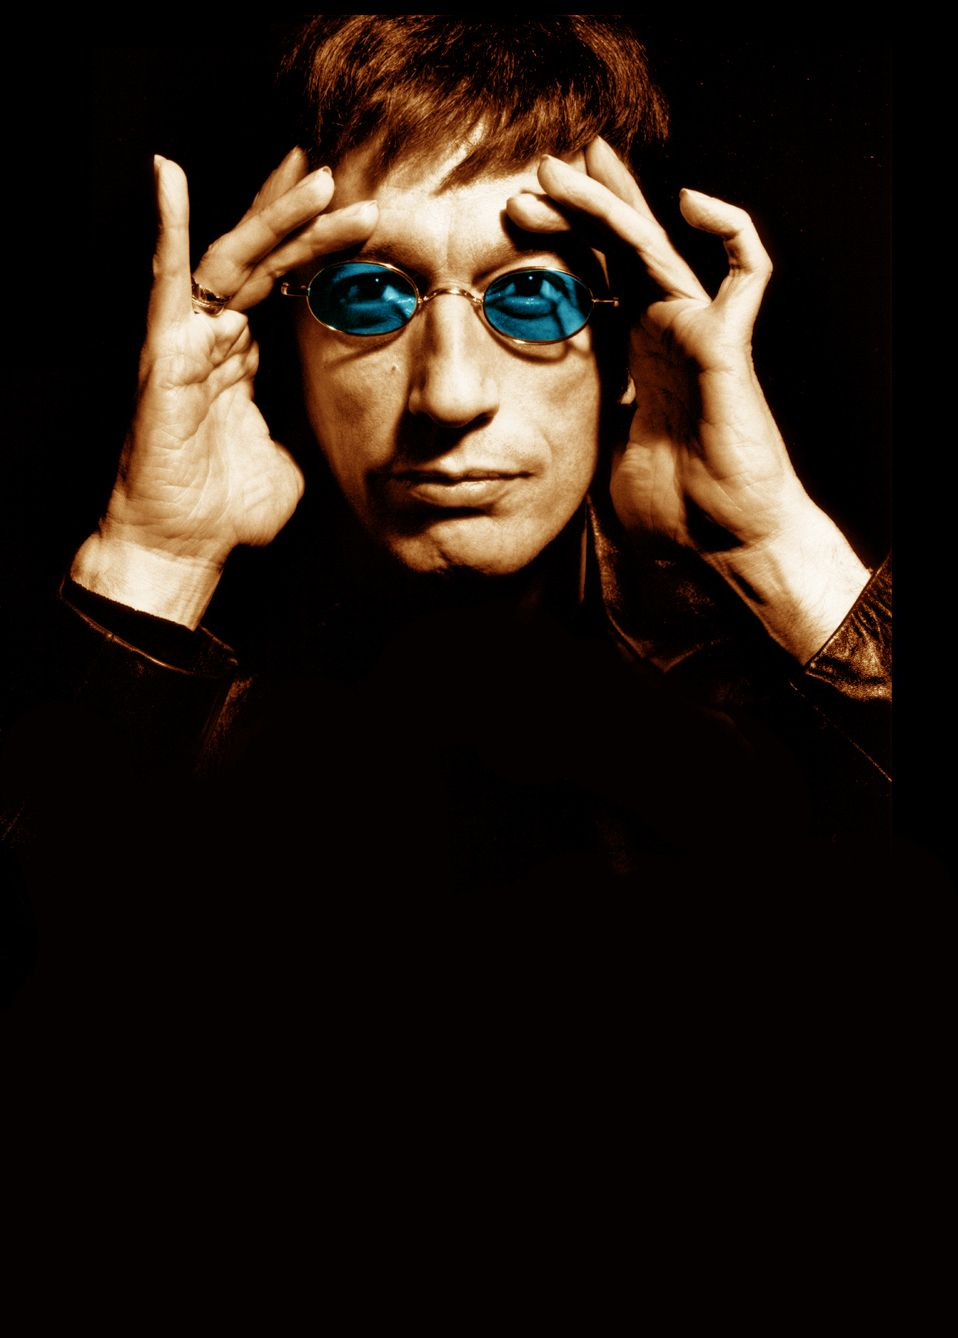 RIP Robin Gibb, member of the Bee Gees.